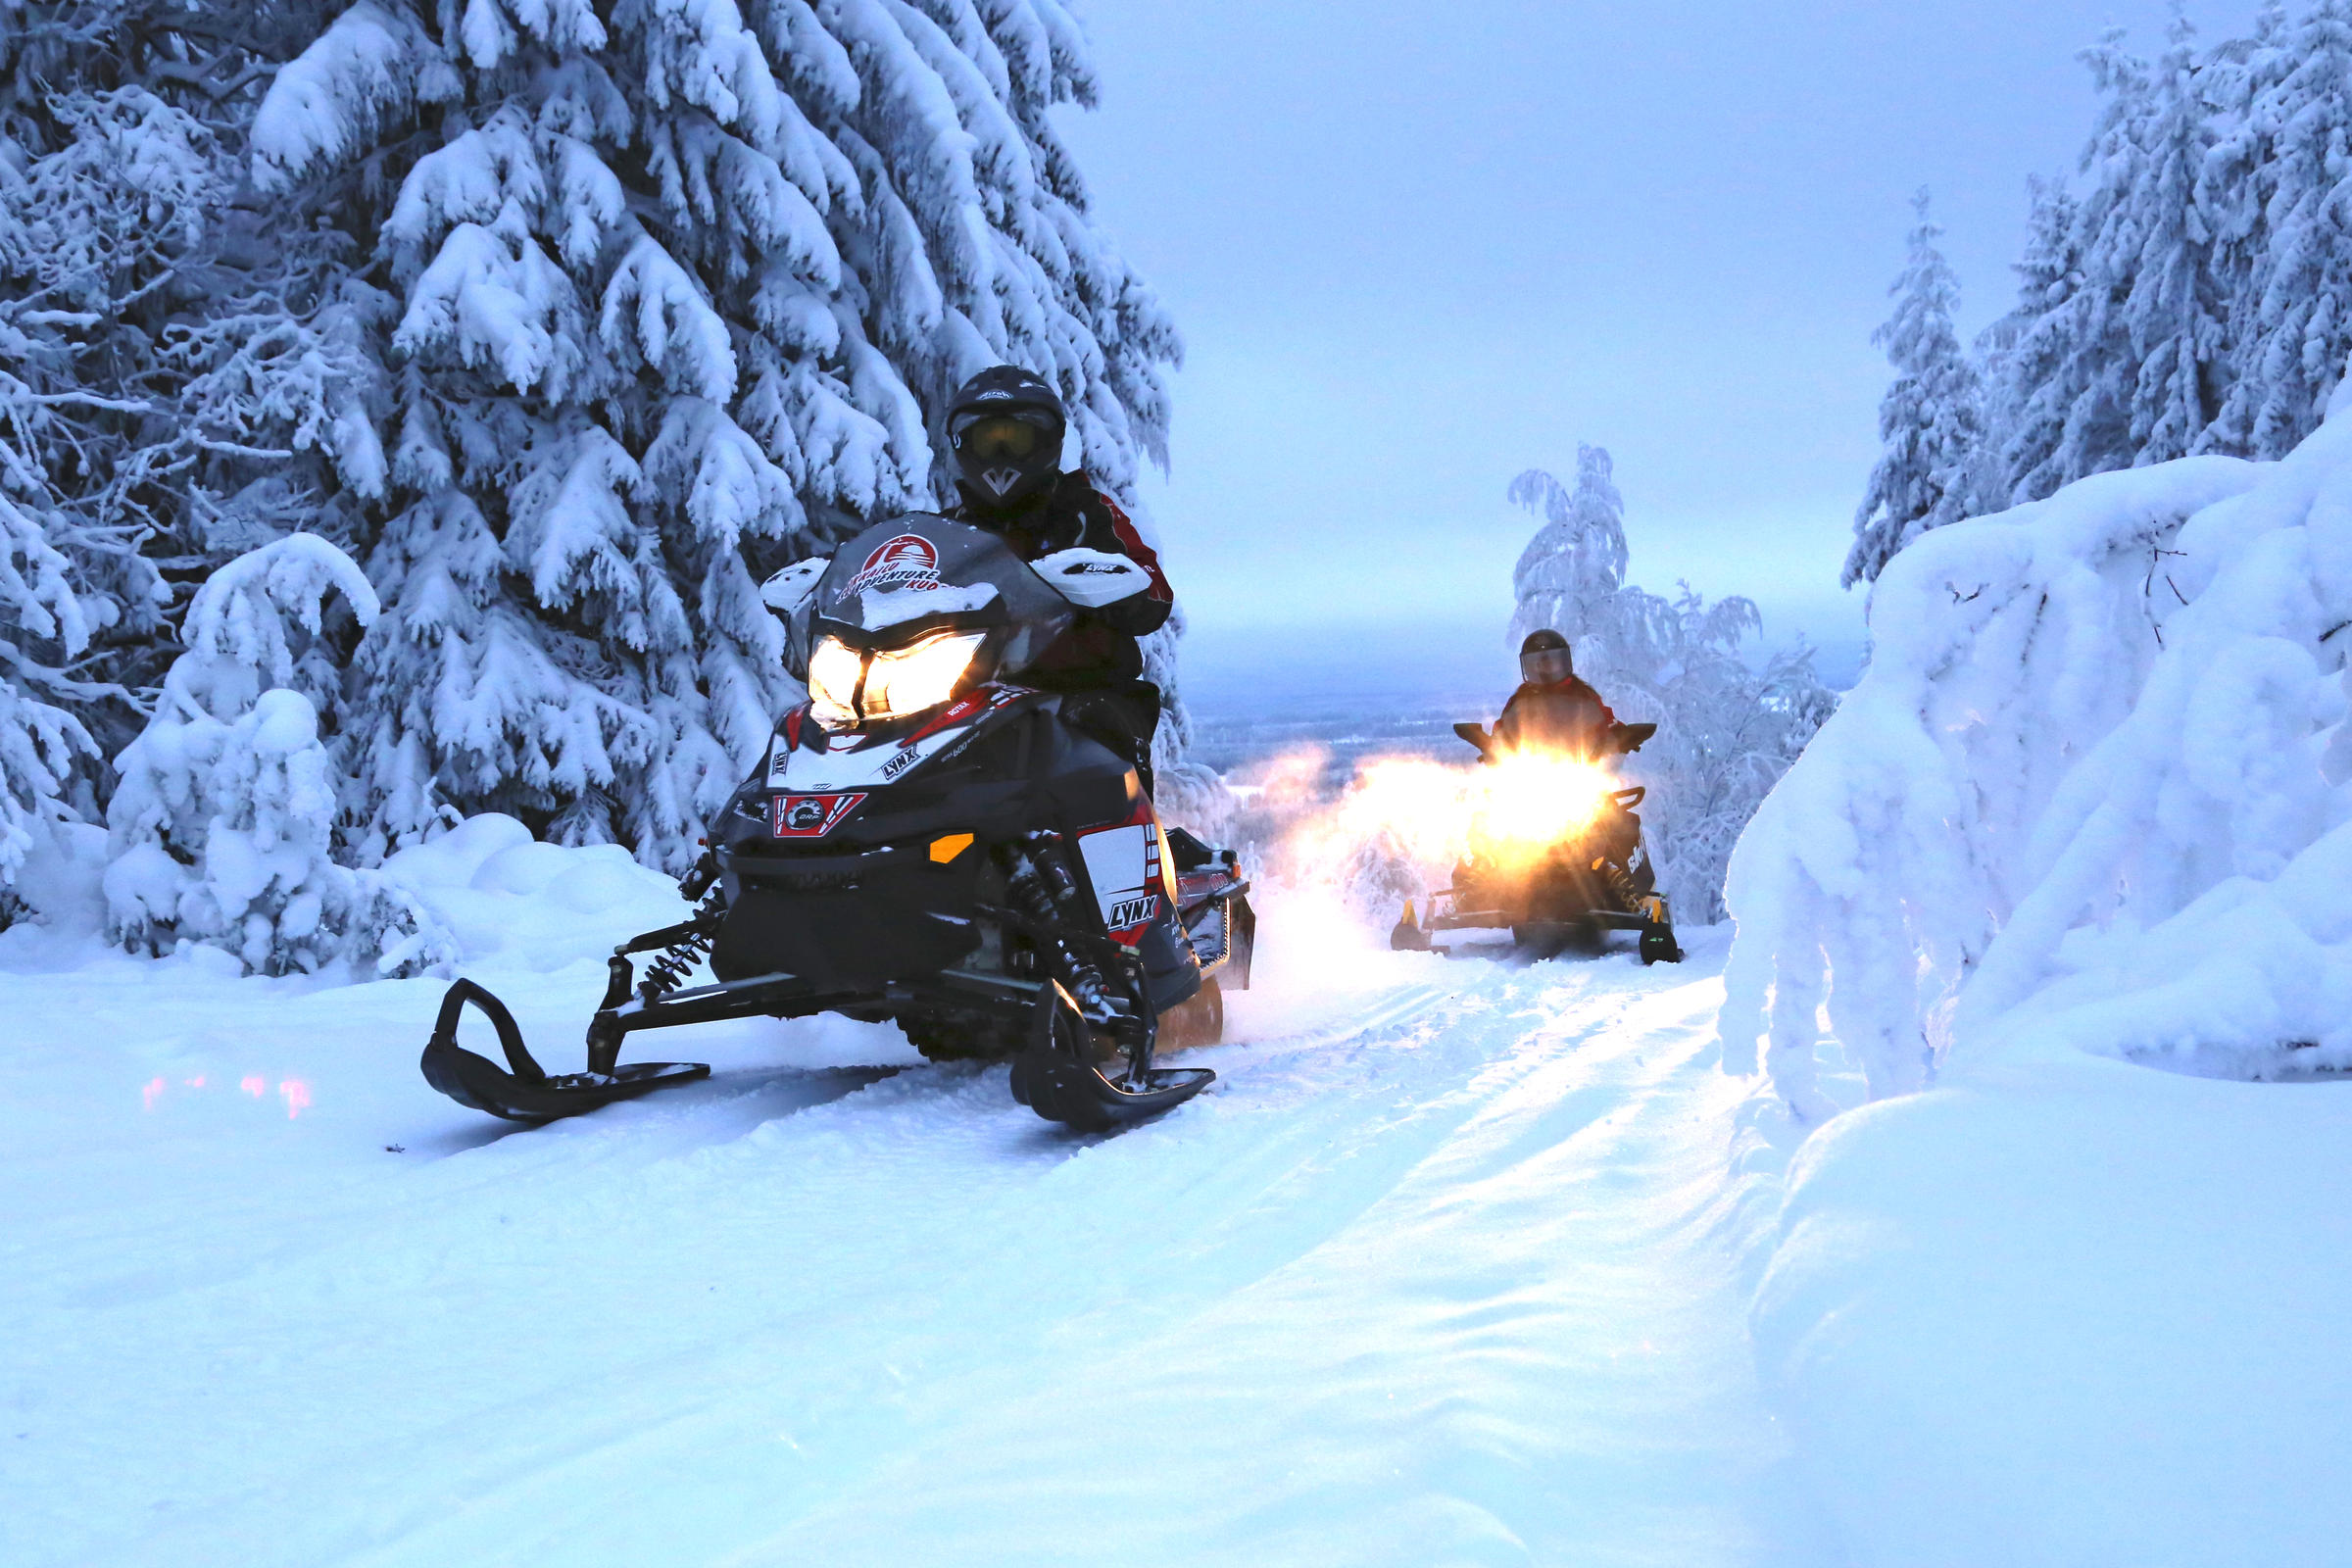 New York Issues Snowmobile Safety Advisory Following